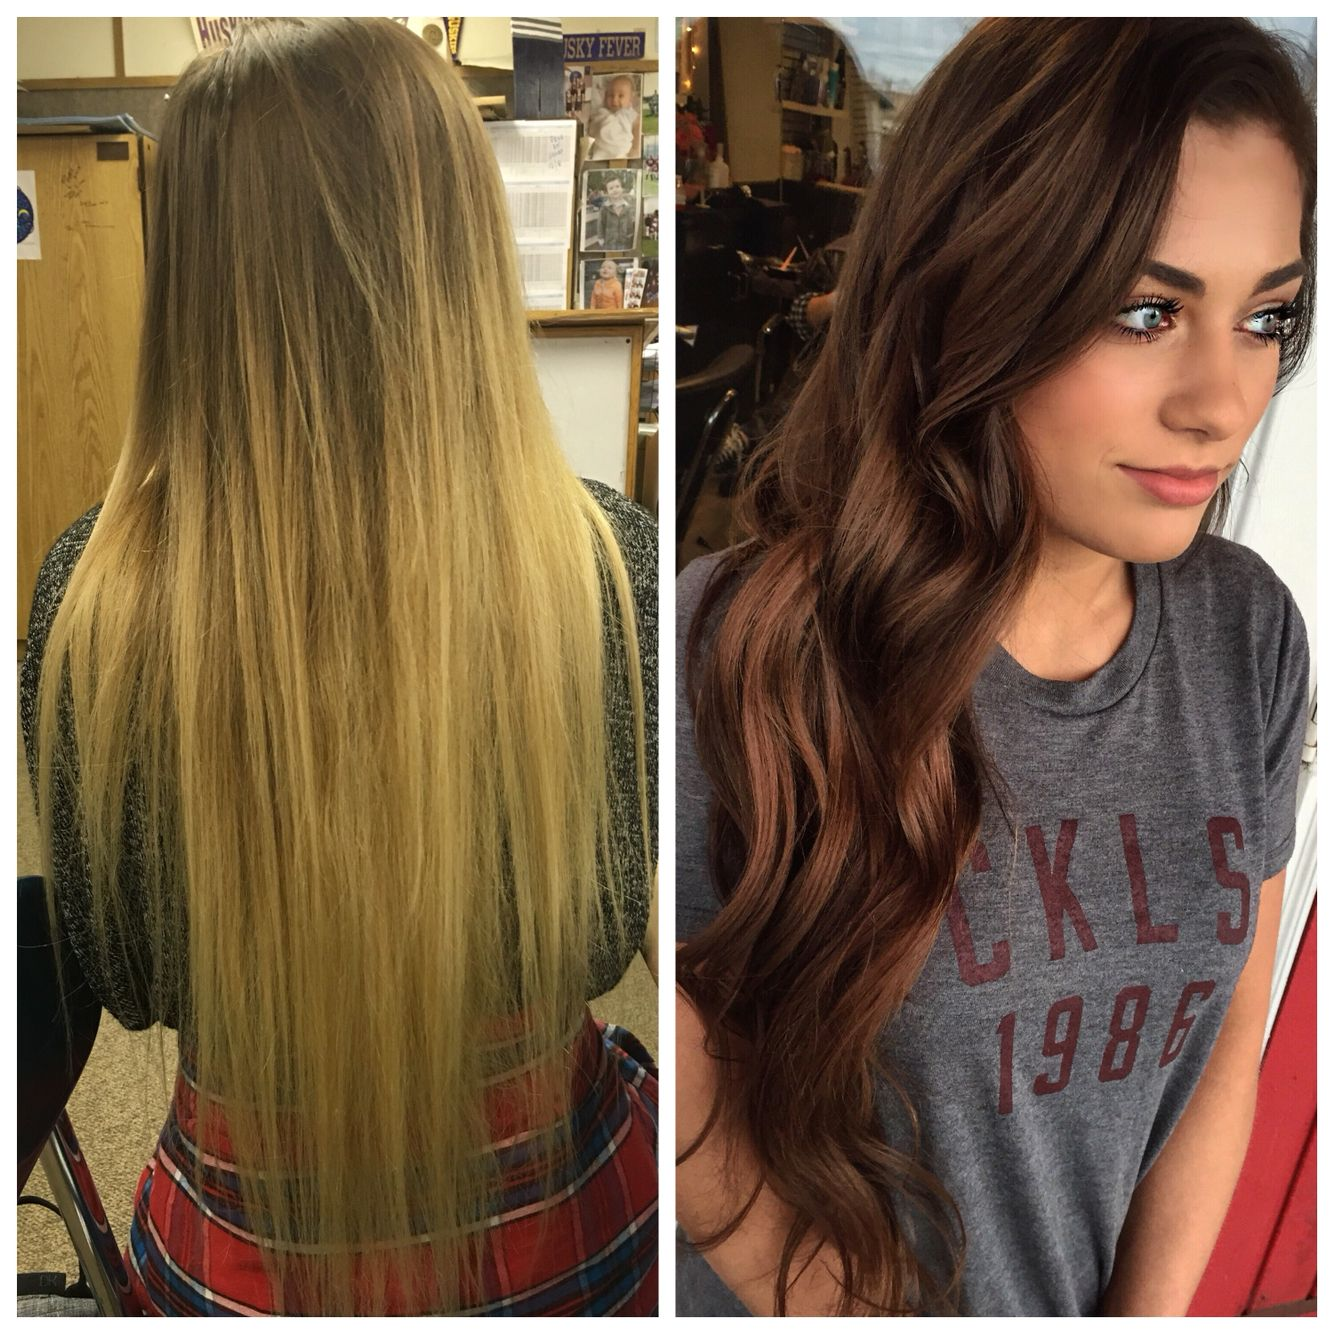 Before And After Blonde To Brunette Hair With Images Brunette Hair